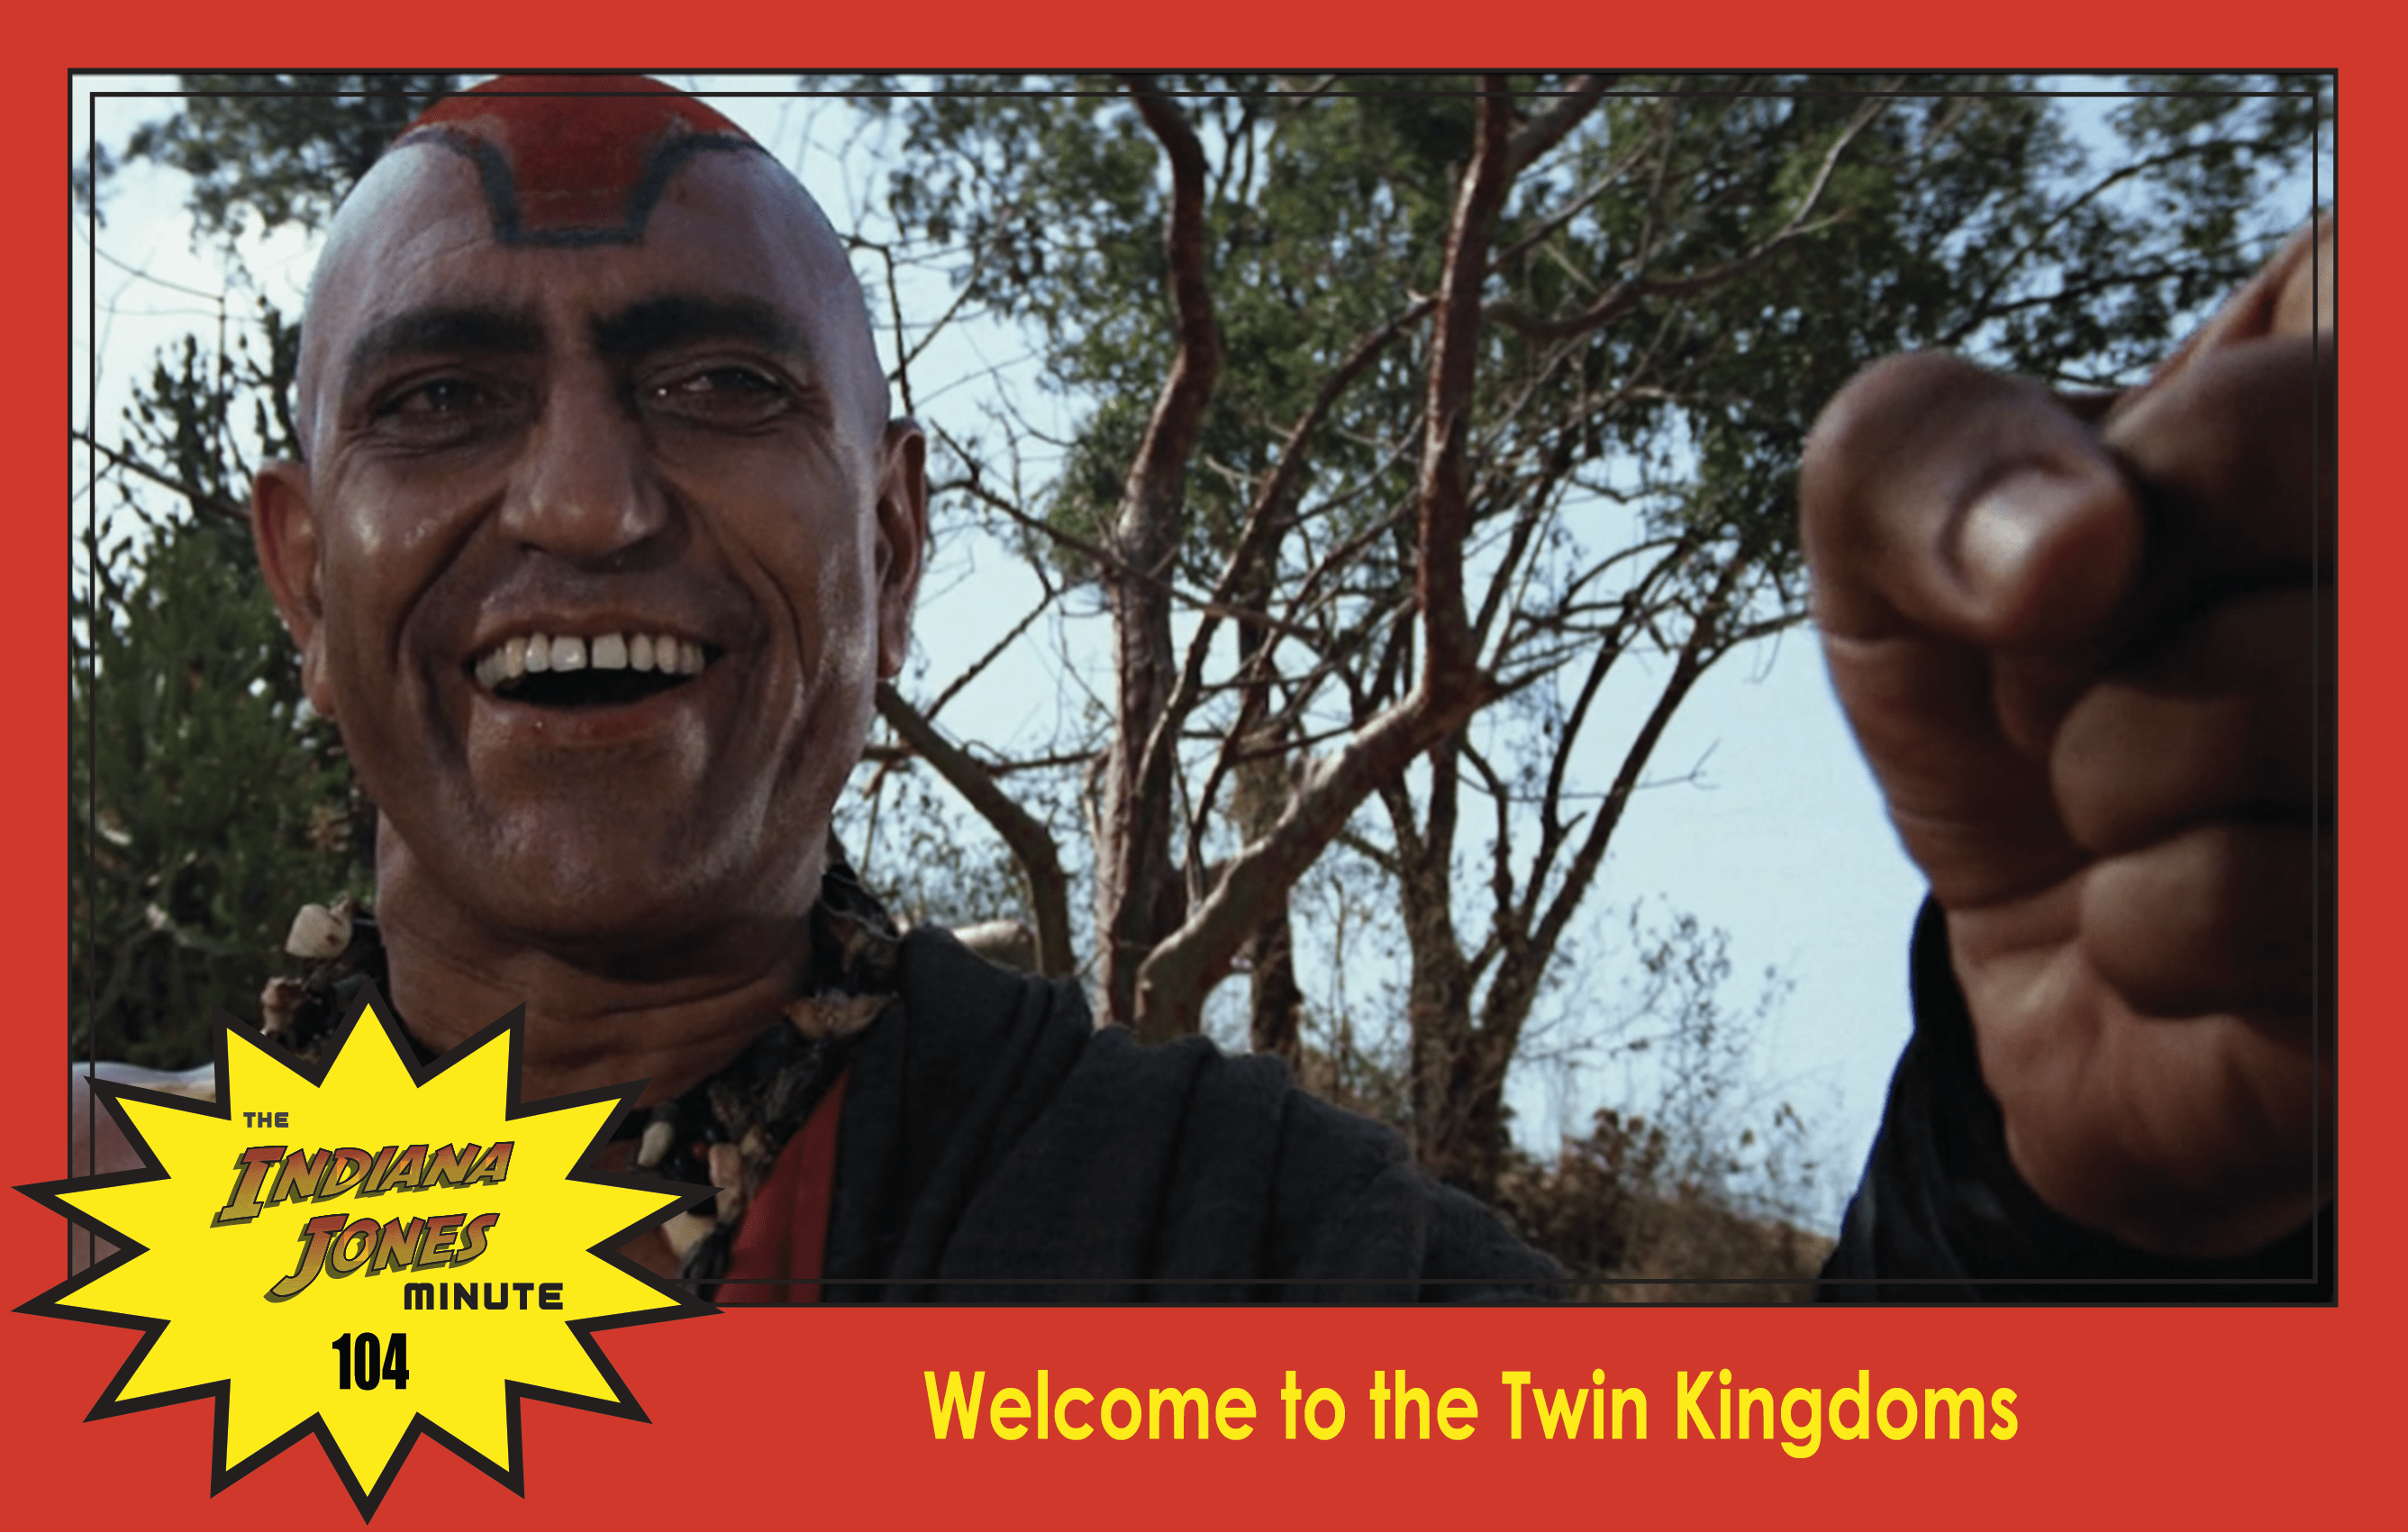 Temple of Doom Minute 104: Welcome to the Twin Kingdoms